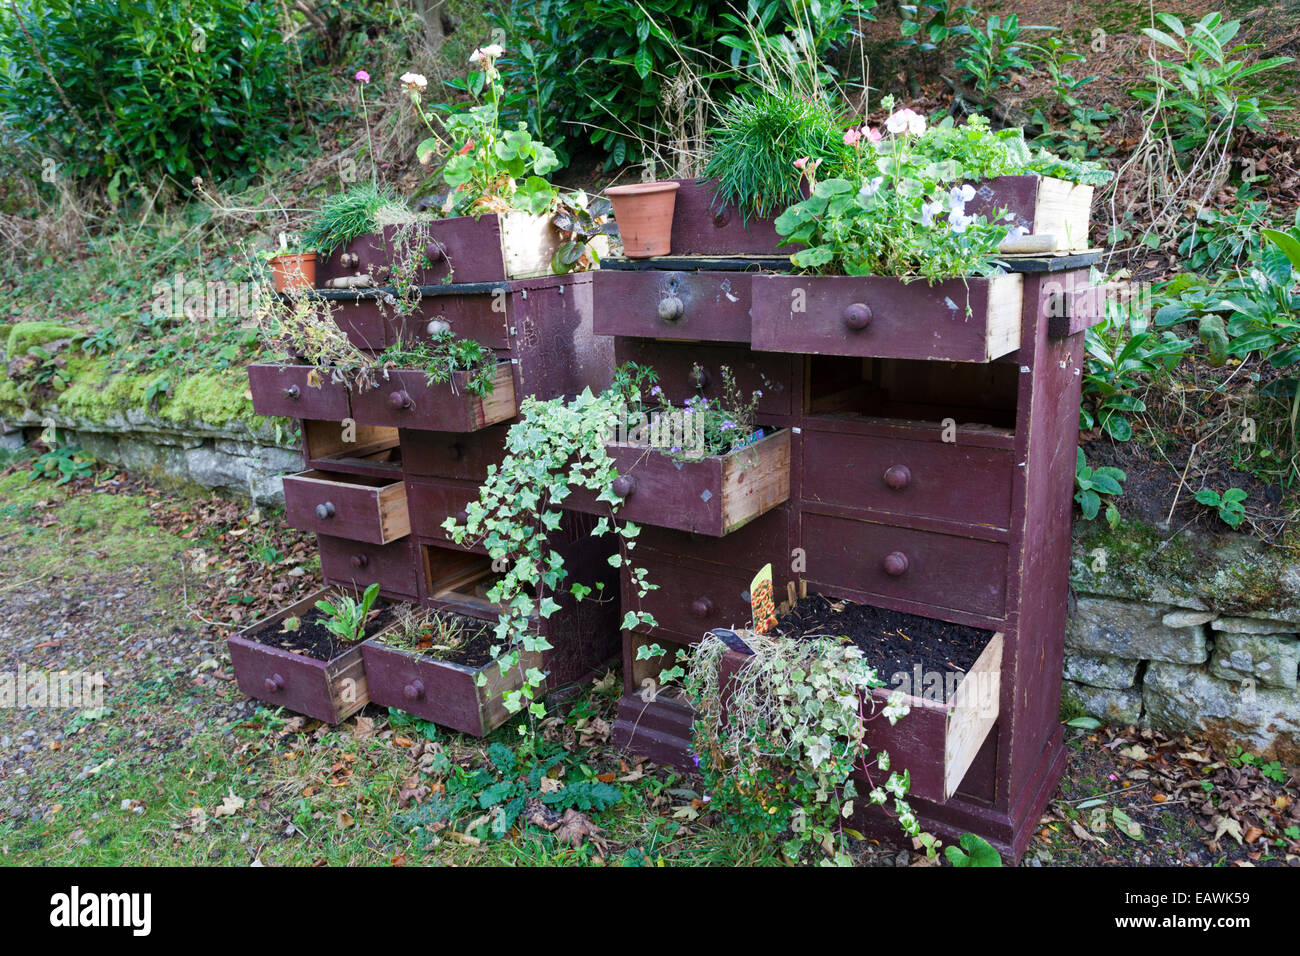 Creative use of an old chest of drawers for planting flowers at